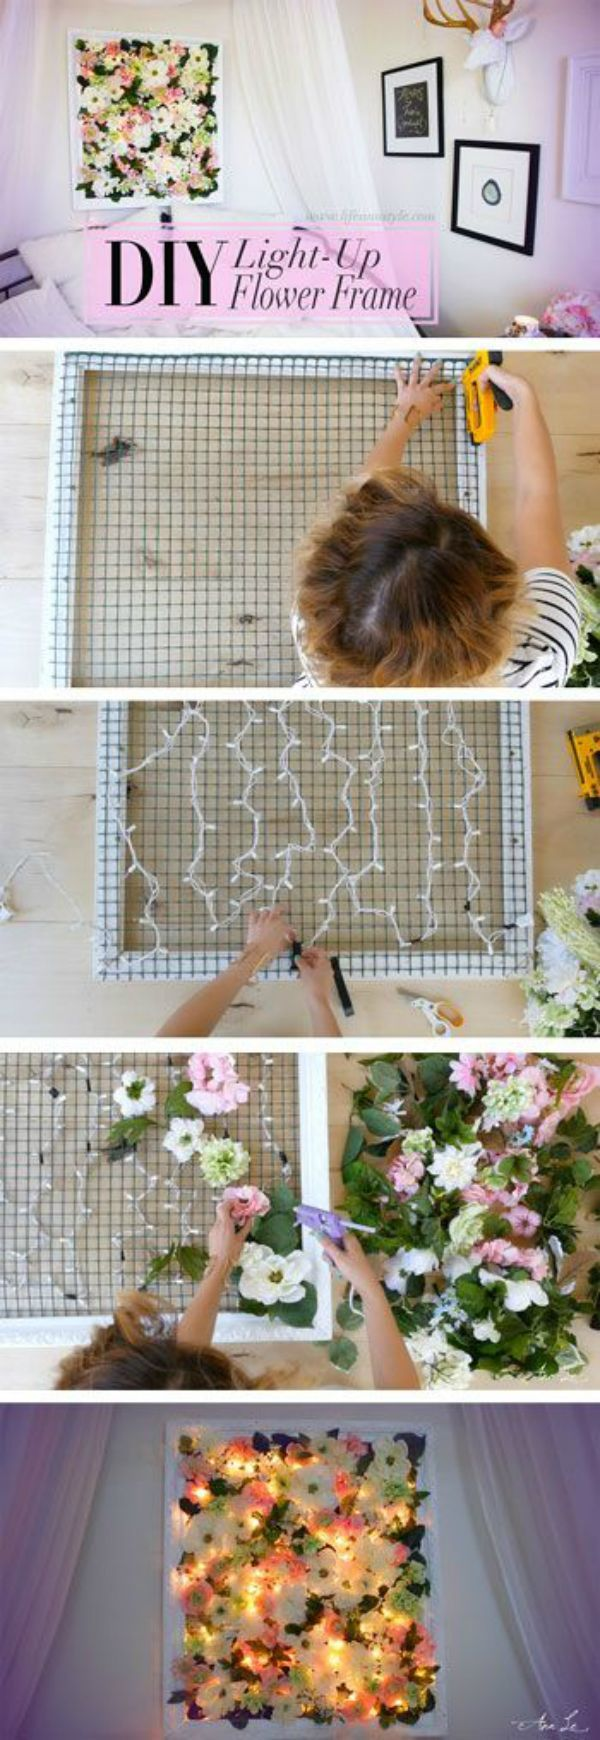 Cheap Bedroom Decor Ideas: DIY Light Up Flower Frameu2026 | NEW Decorating Ideas